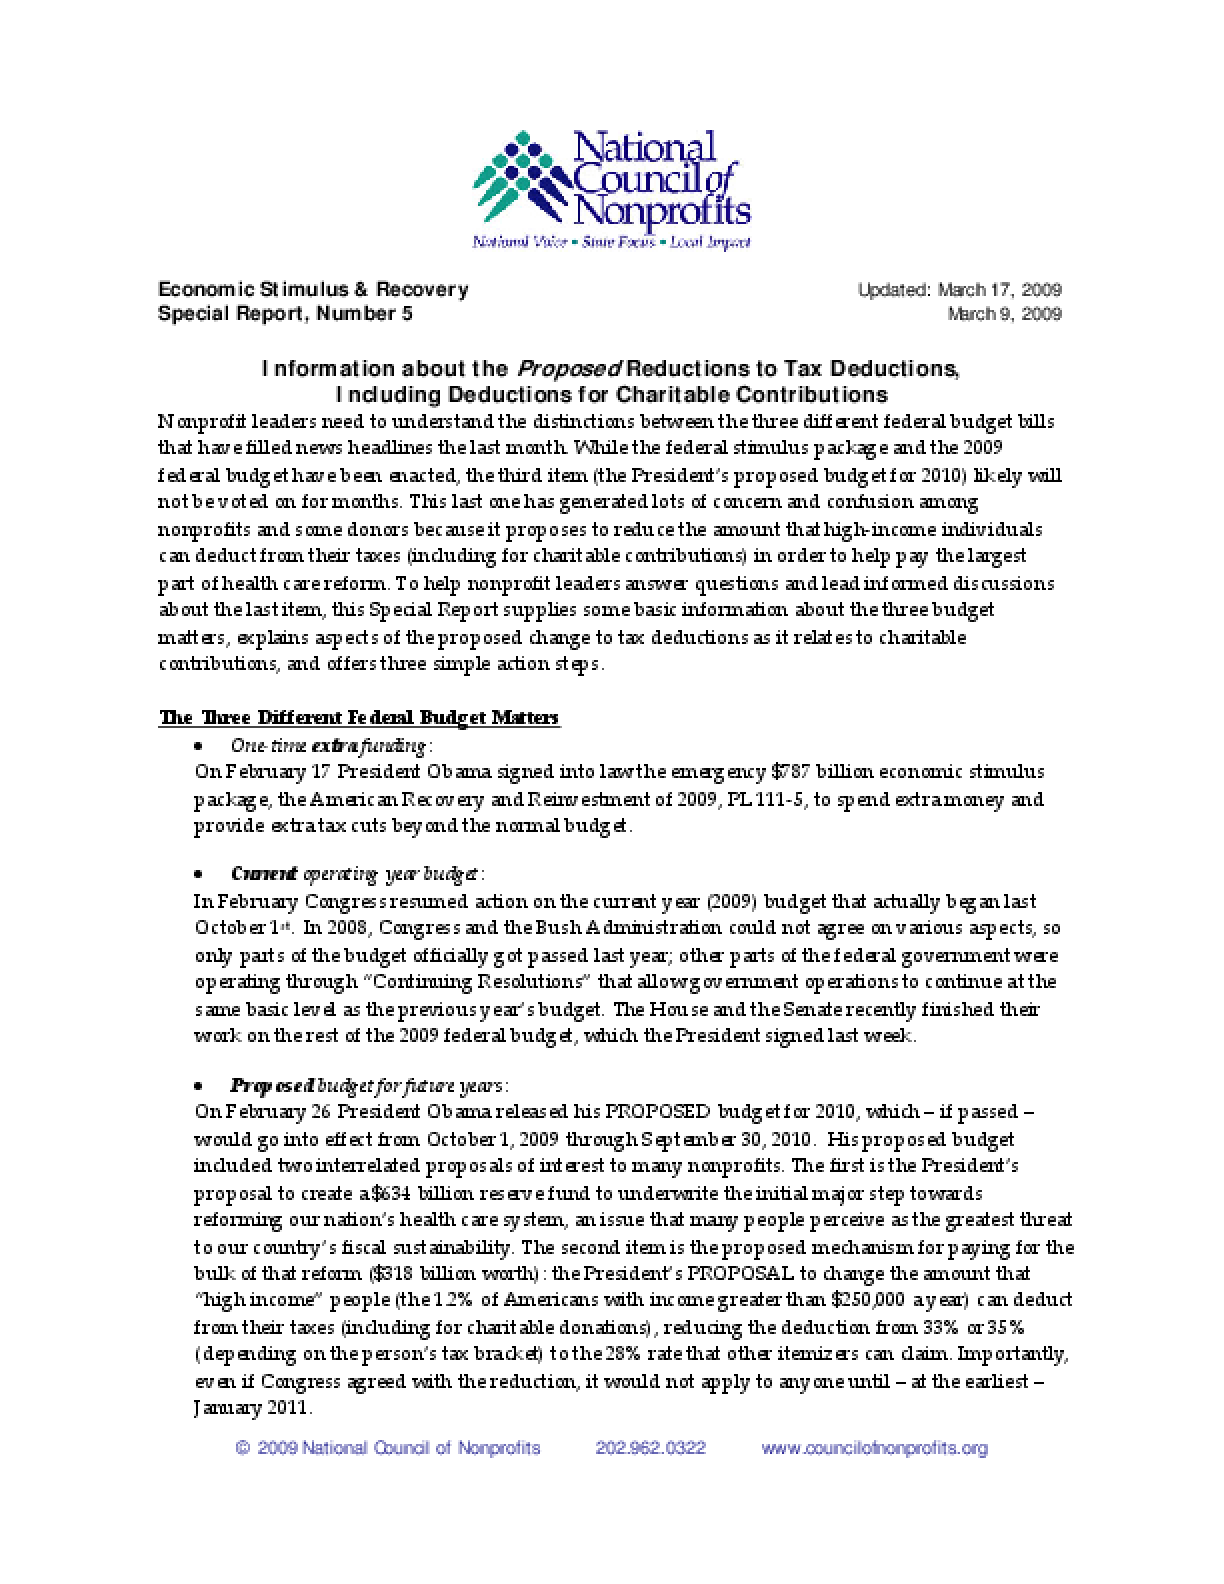 Information about the Proposed Changes in Charitable Deductions - Updated 3.17.09